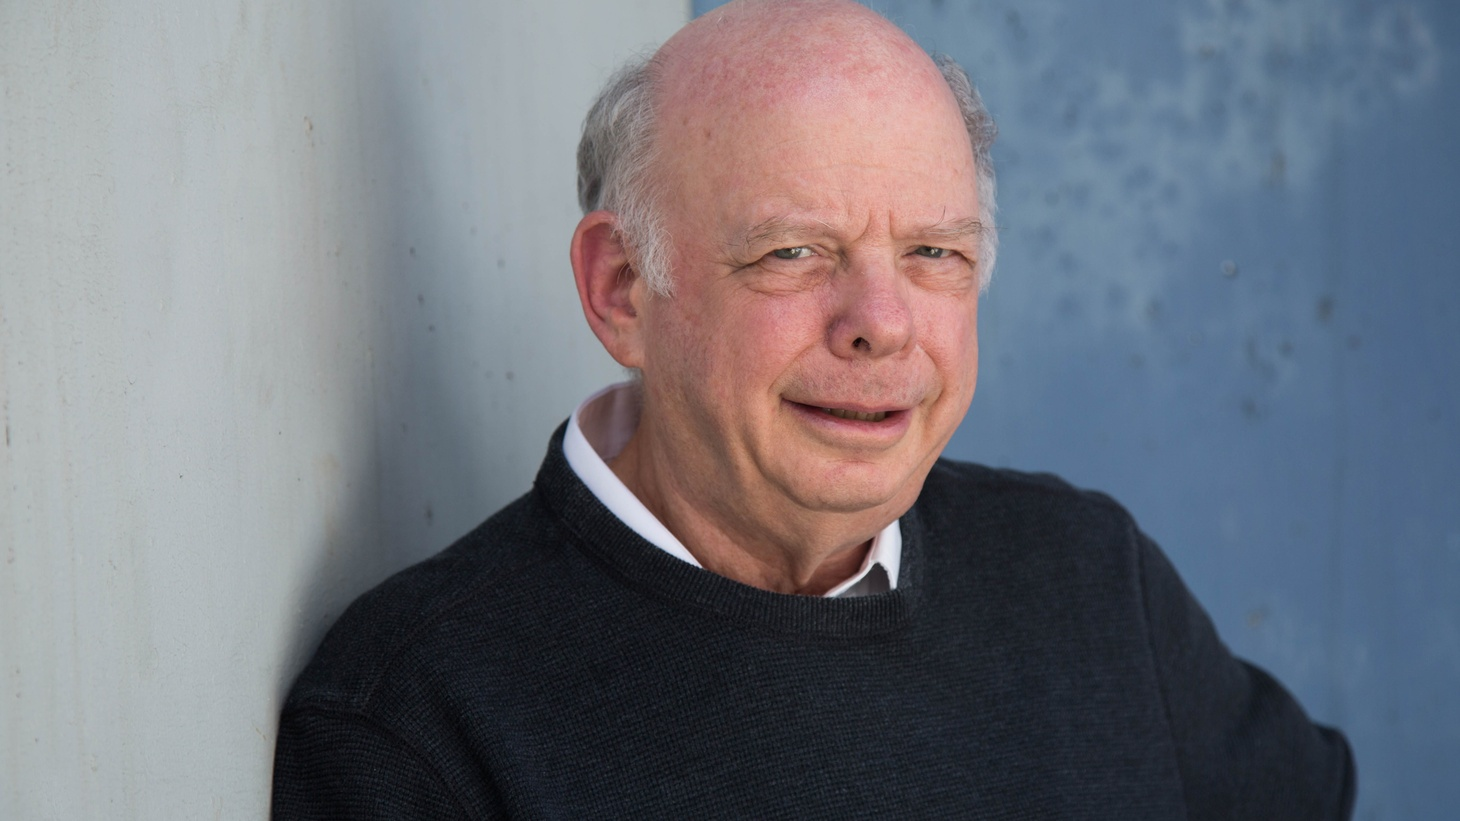 This show features a dramatic and emotional reading by writer/actor Wallace Shawn of an excerpt from Night Thoughts, his book-length essay. (REPEAT)